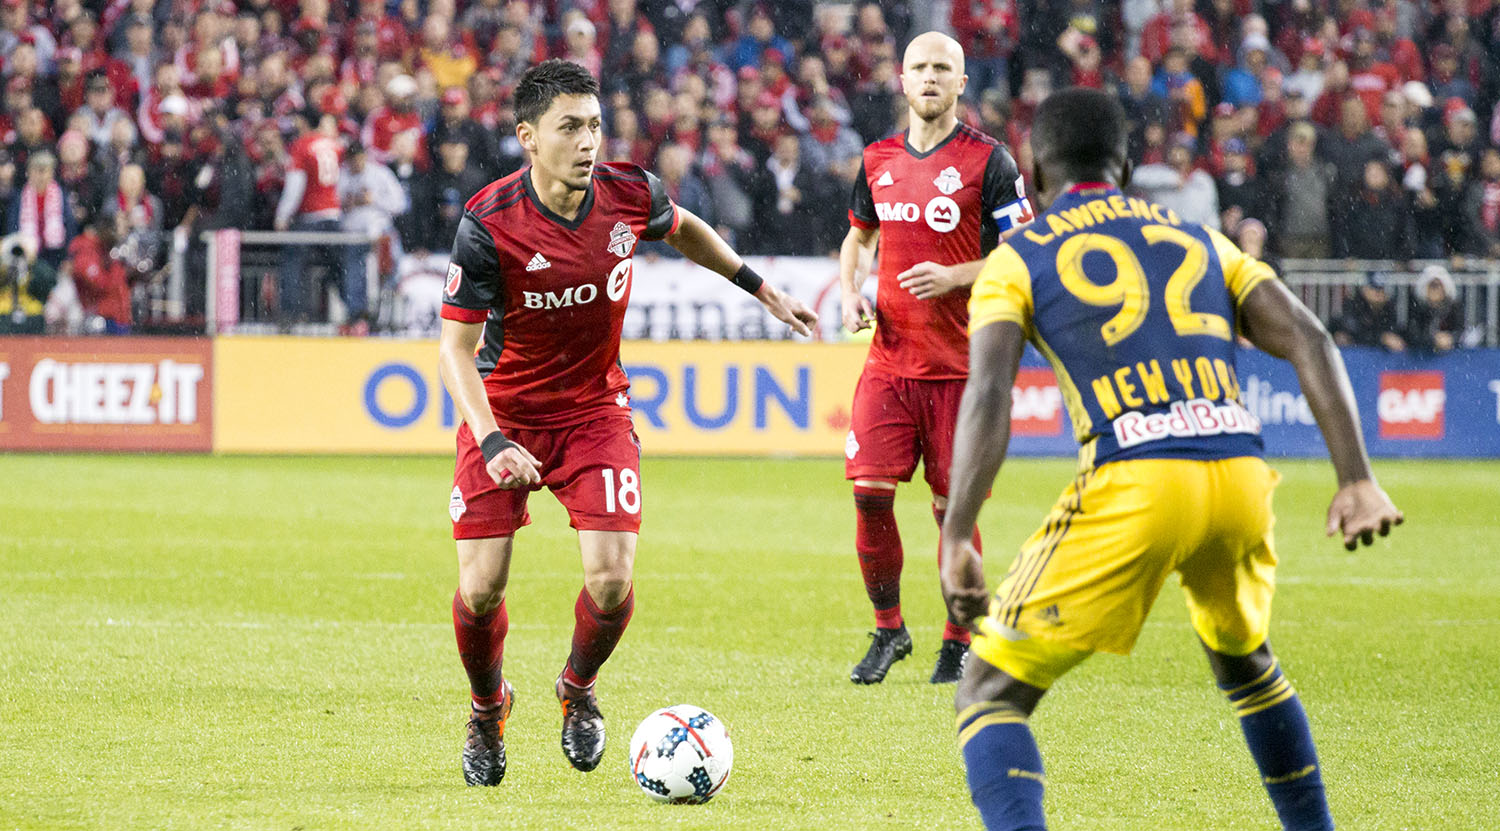 Marky Delgado on the ball in the attacking third during a Toronto FC playoff match in 2017. Image by Dennis Marciniak of denMAR Media.